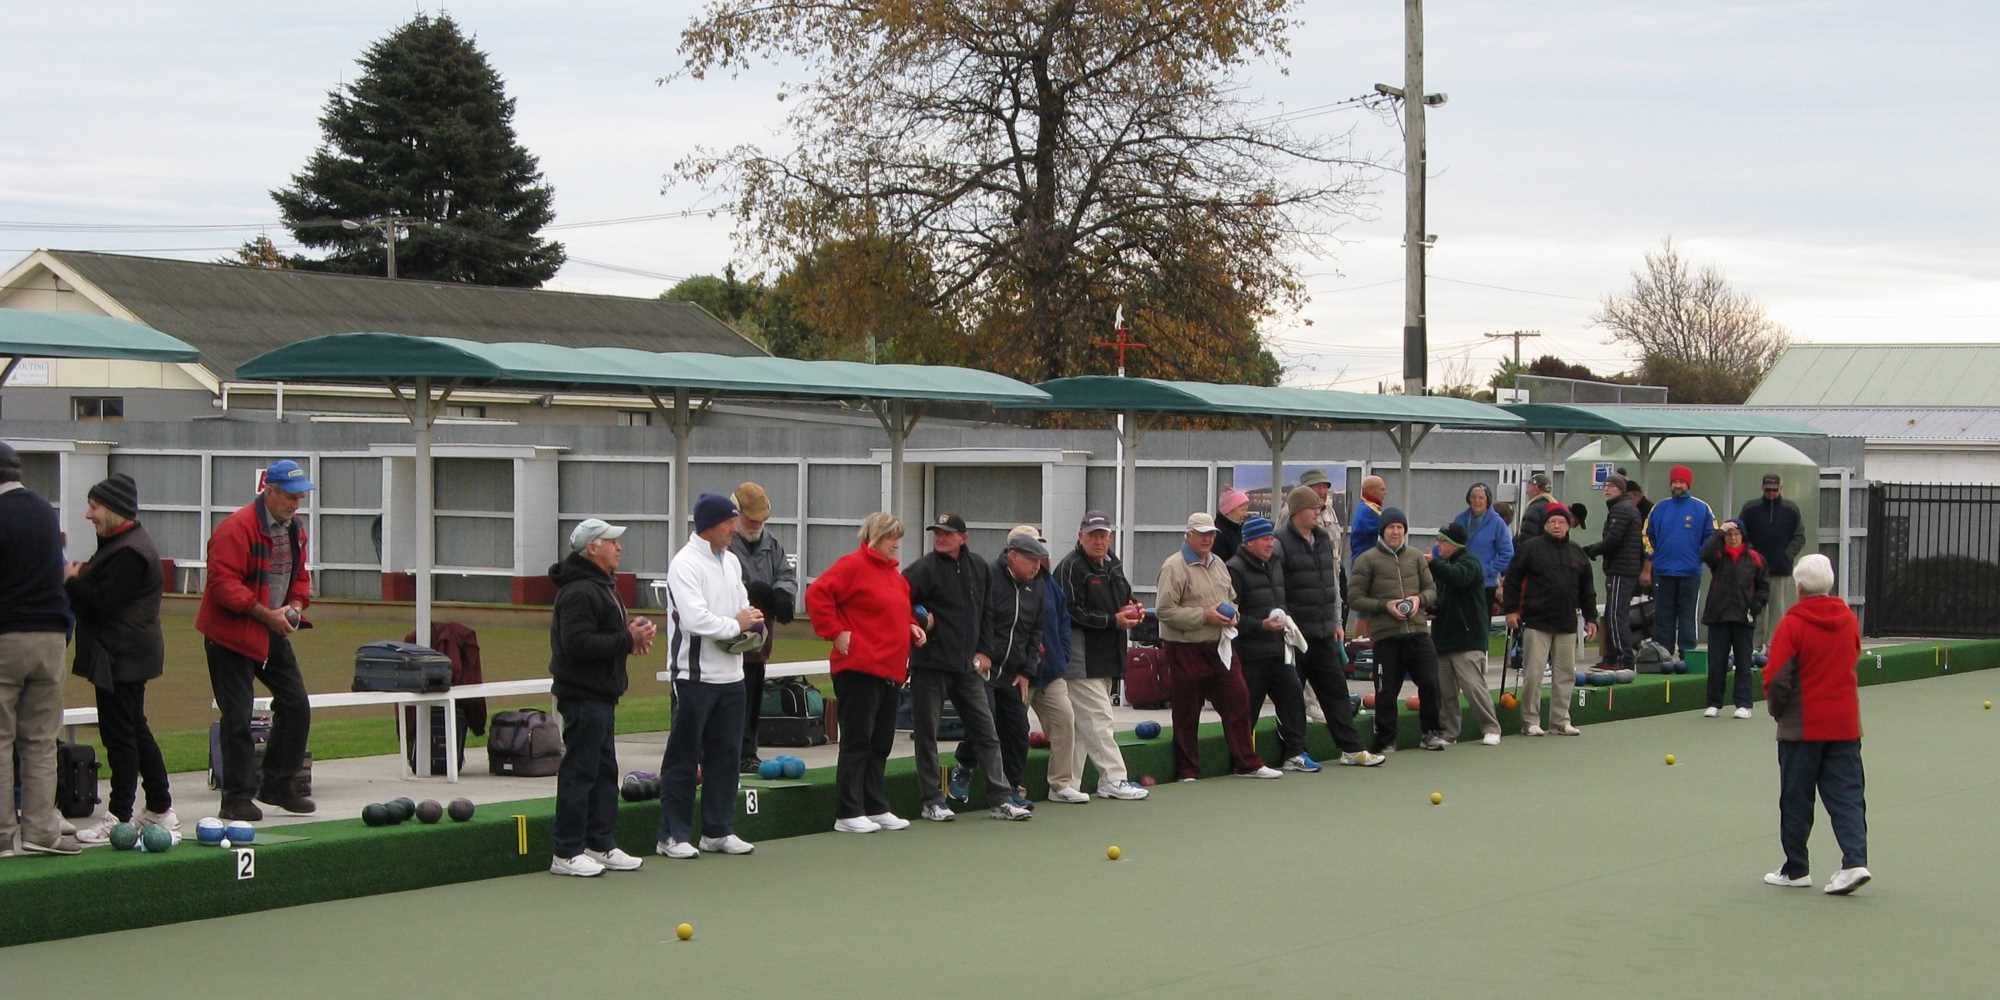 Winter Three Bowl Triples Tournament 9 June - Lyndsey Welcomes the Players